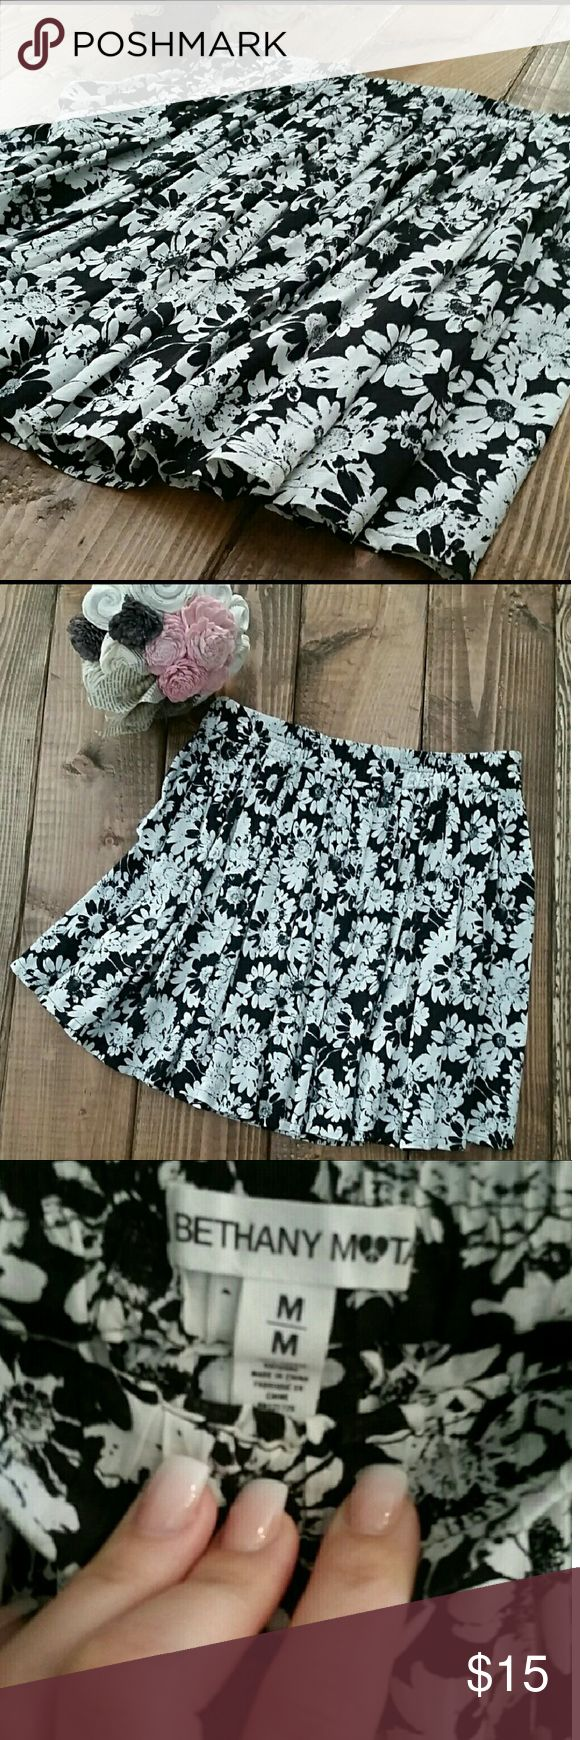 Fun floral print skirt Cream and black floral print Soft and flirty to wear Perfect for summer In EUC Size Juniors Medium Bethany Mota Skirts Mini